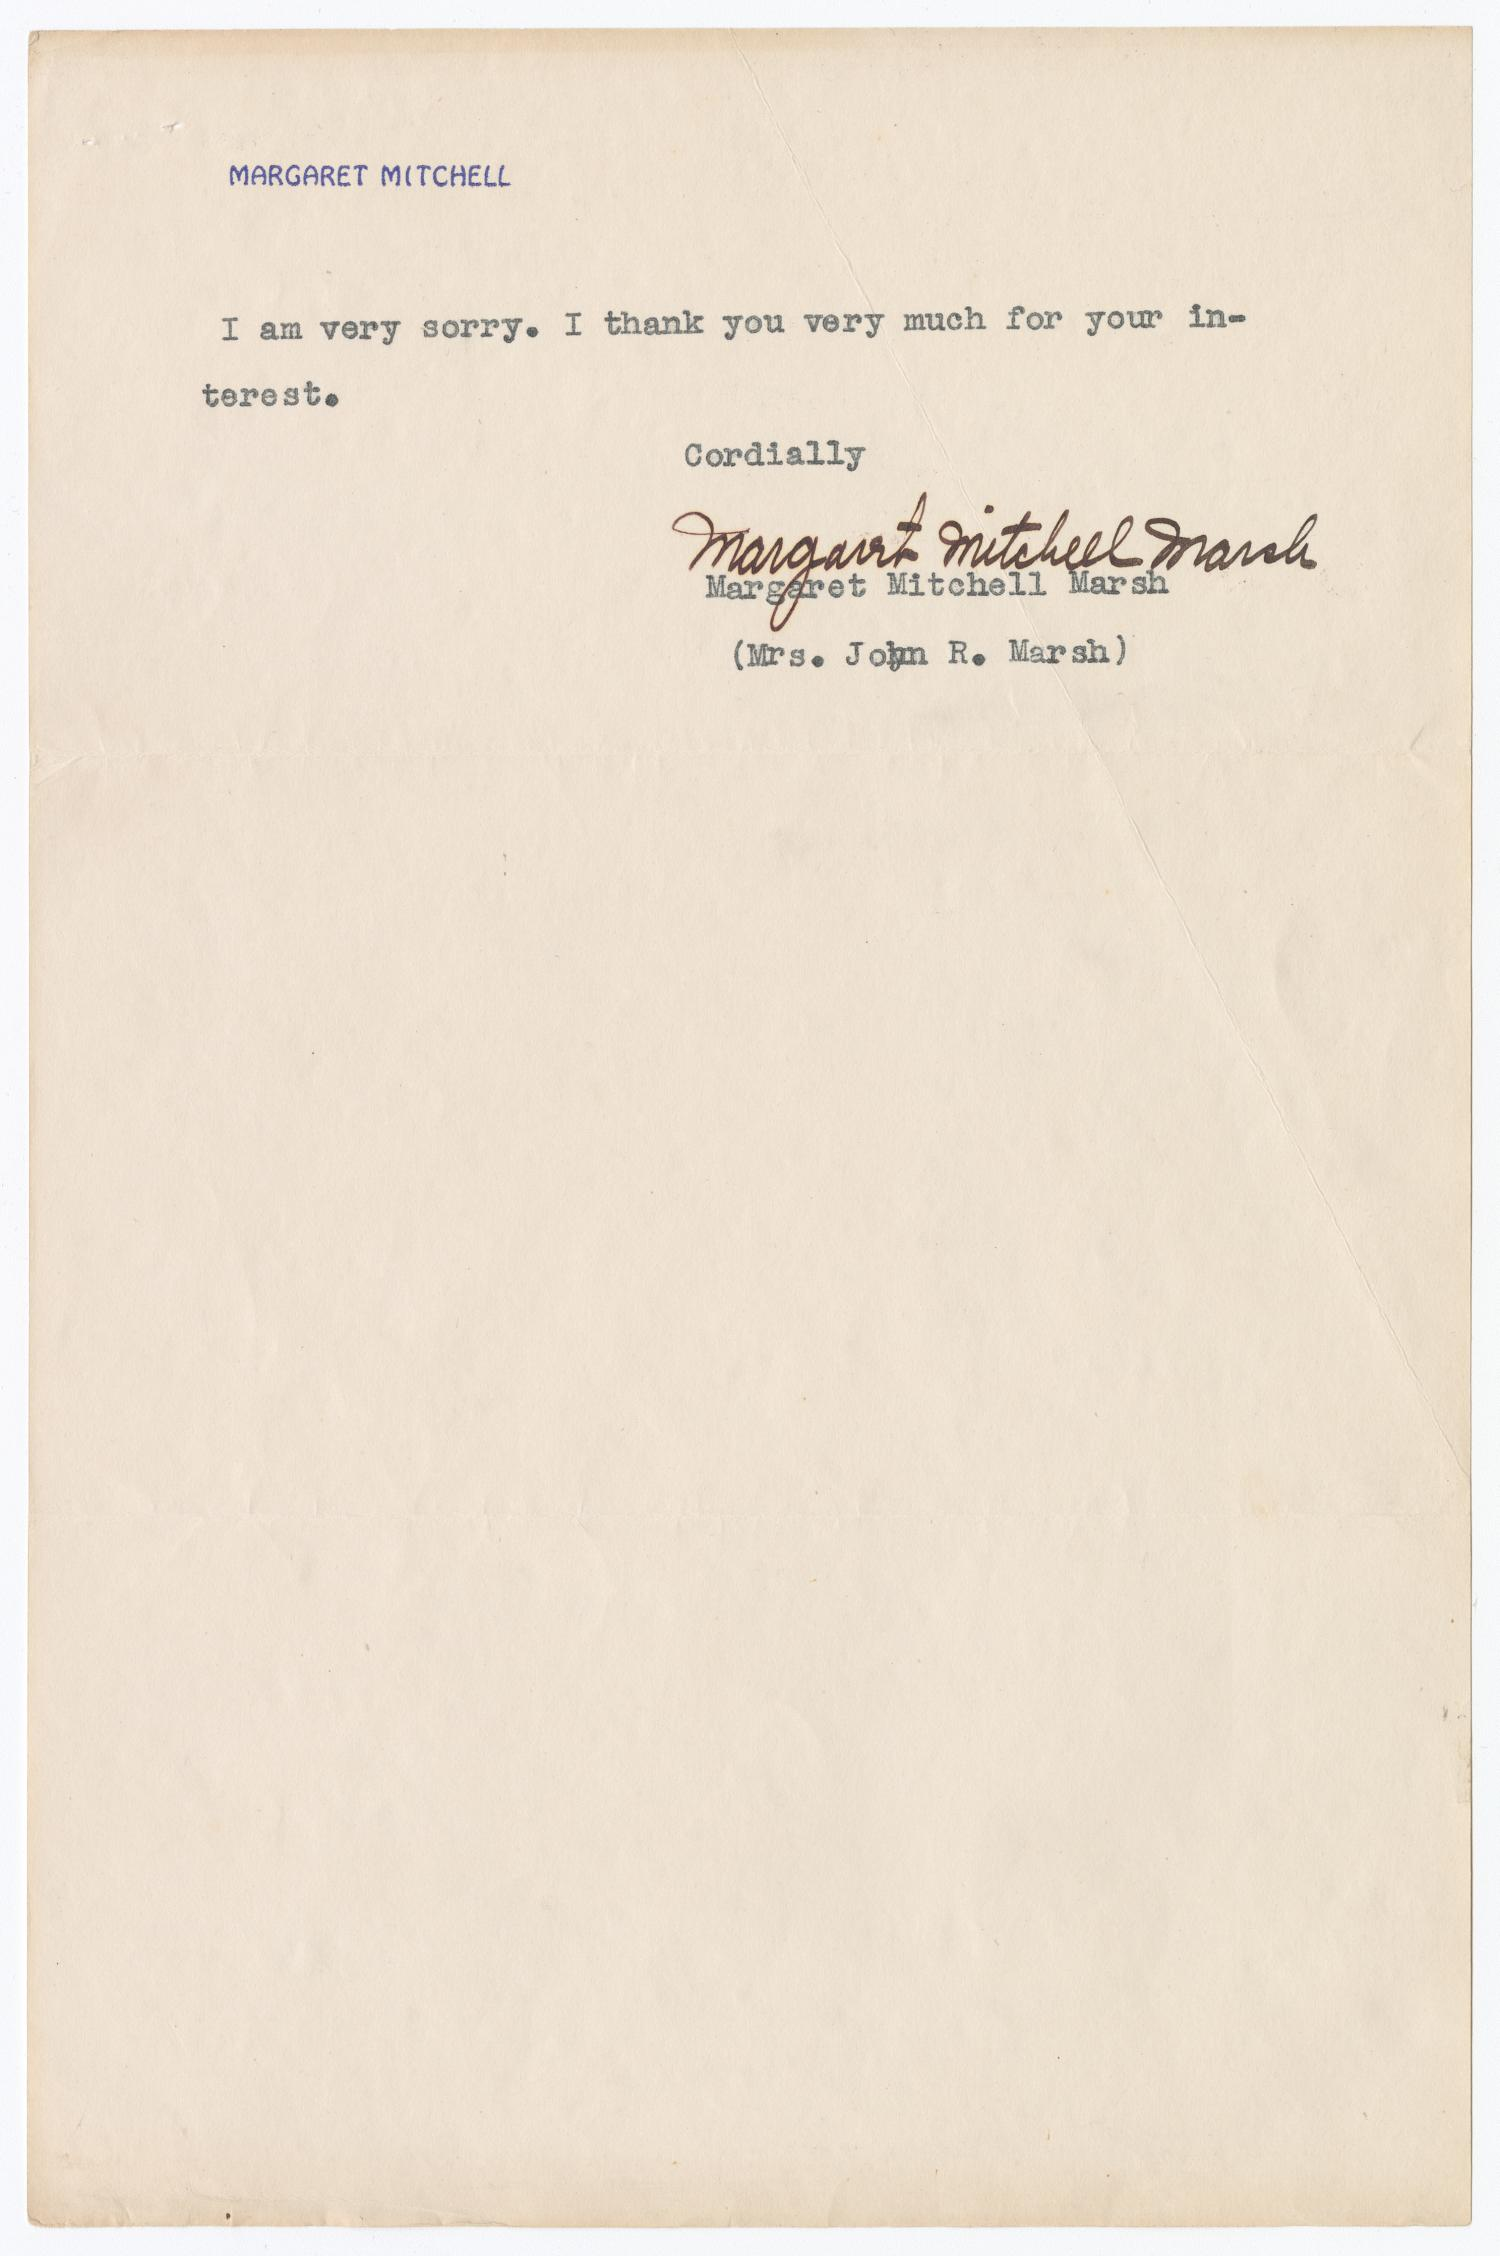 a single typed line and signature ending the letter from Margaret Mitchell to Paul Kruze.